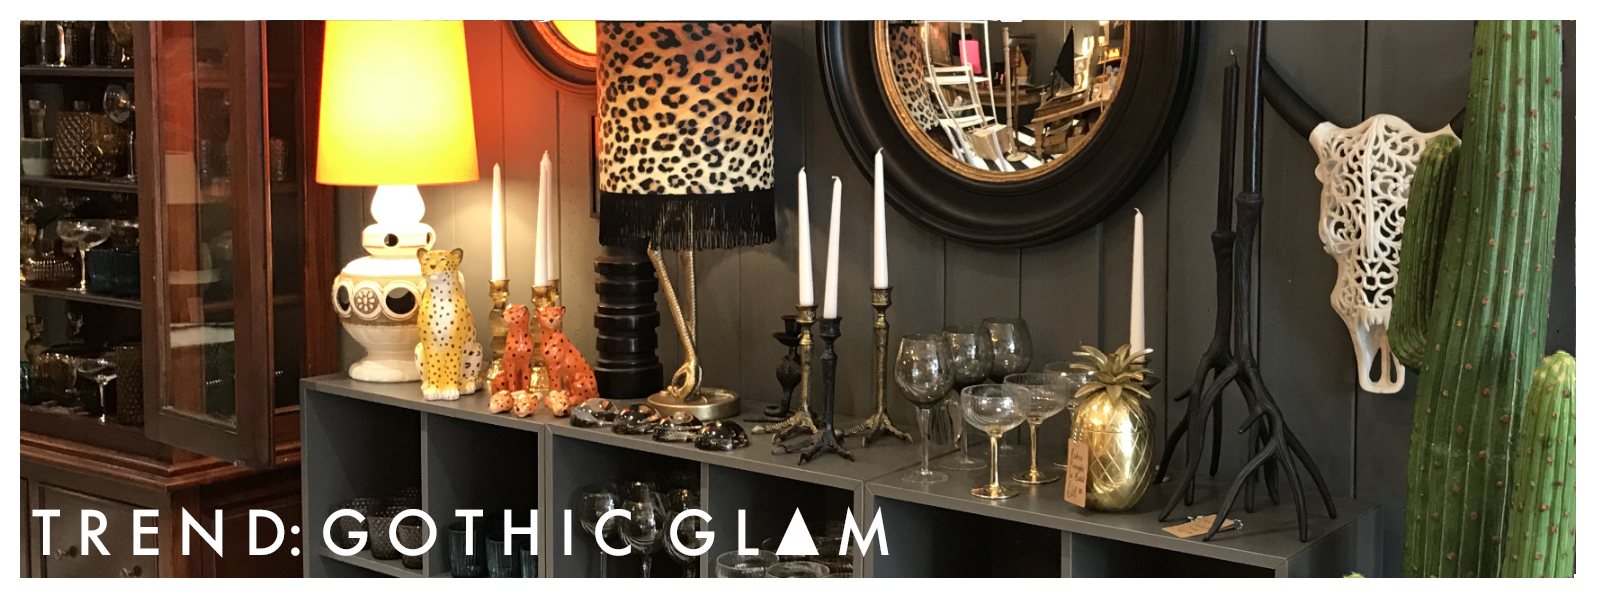 gothic glam inspired homewares and accessories